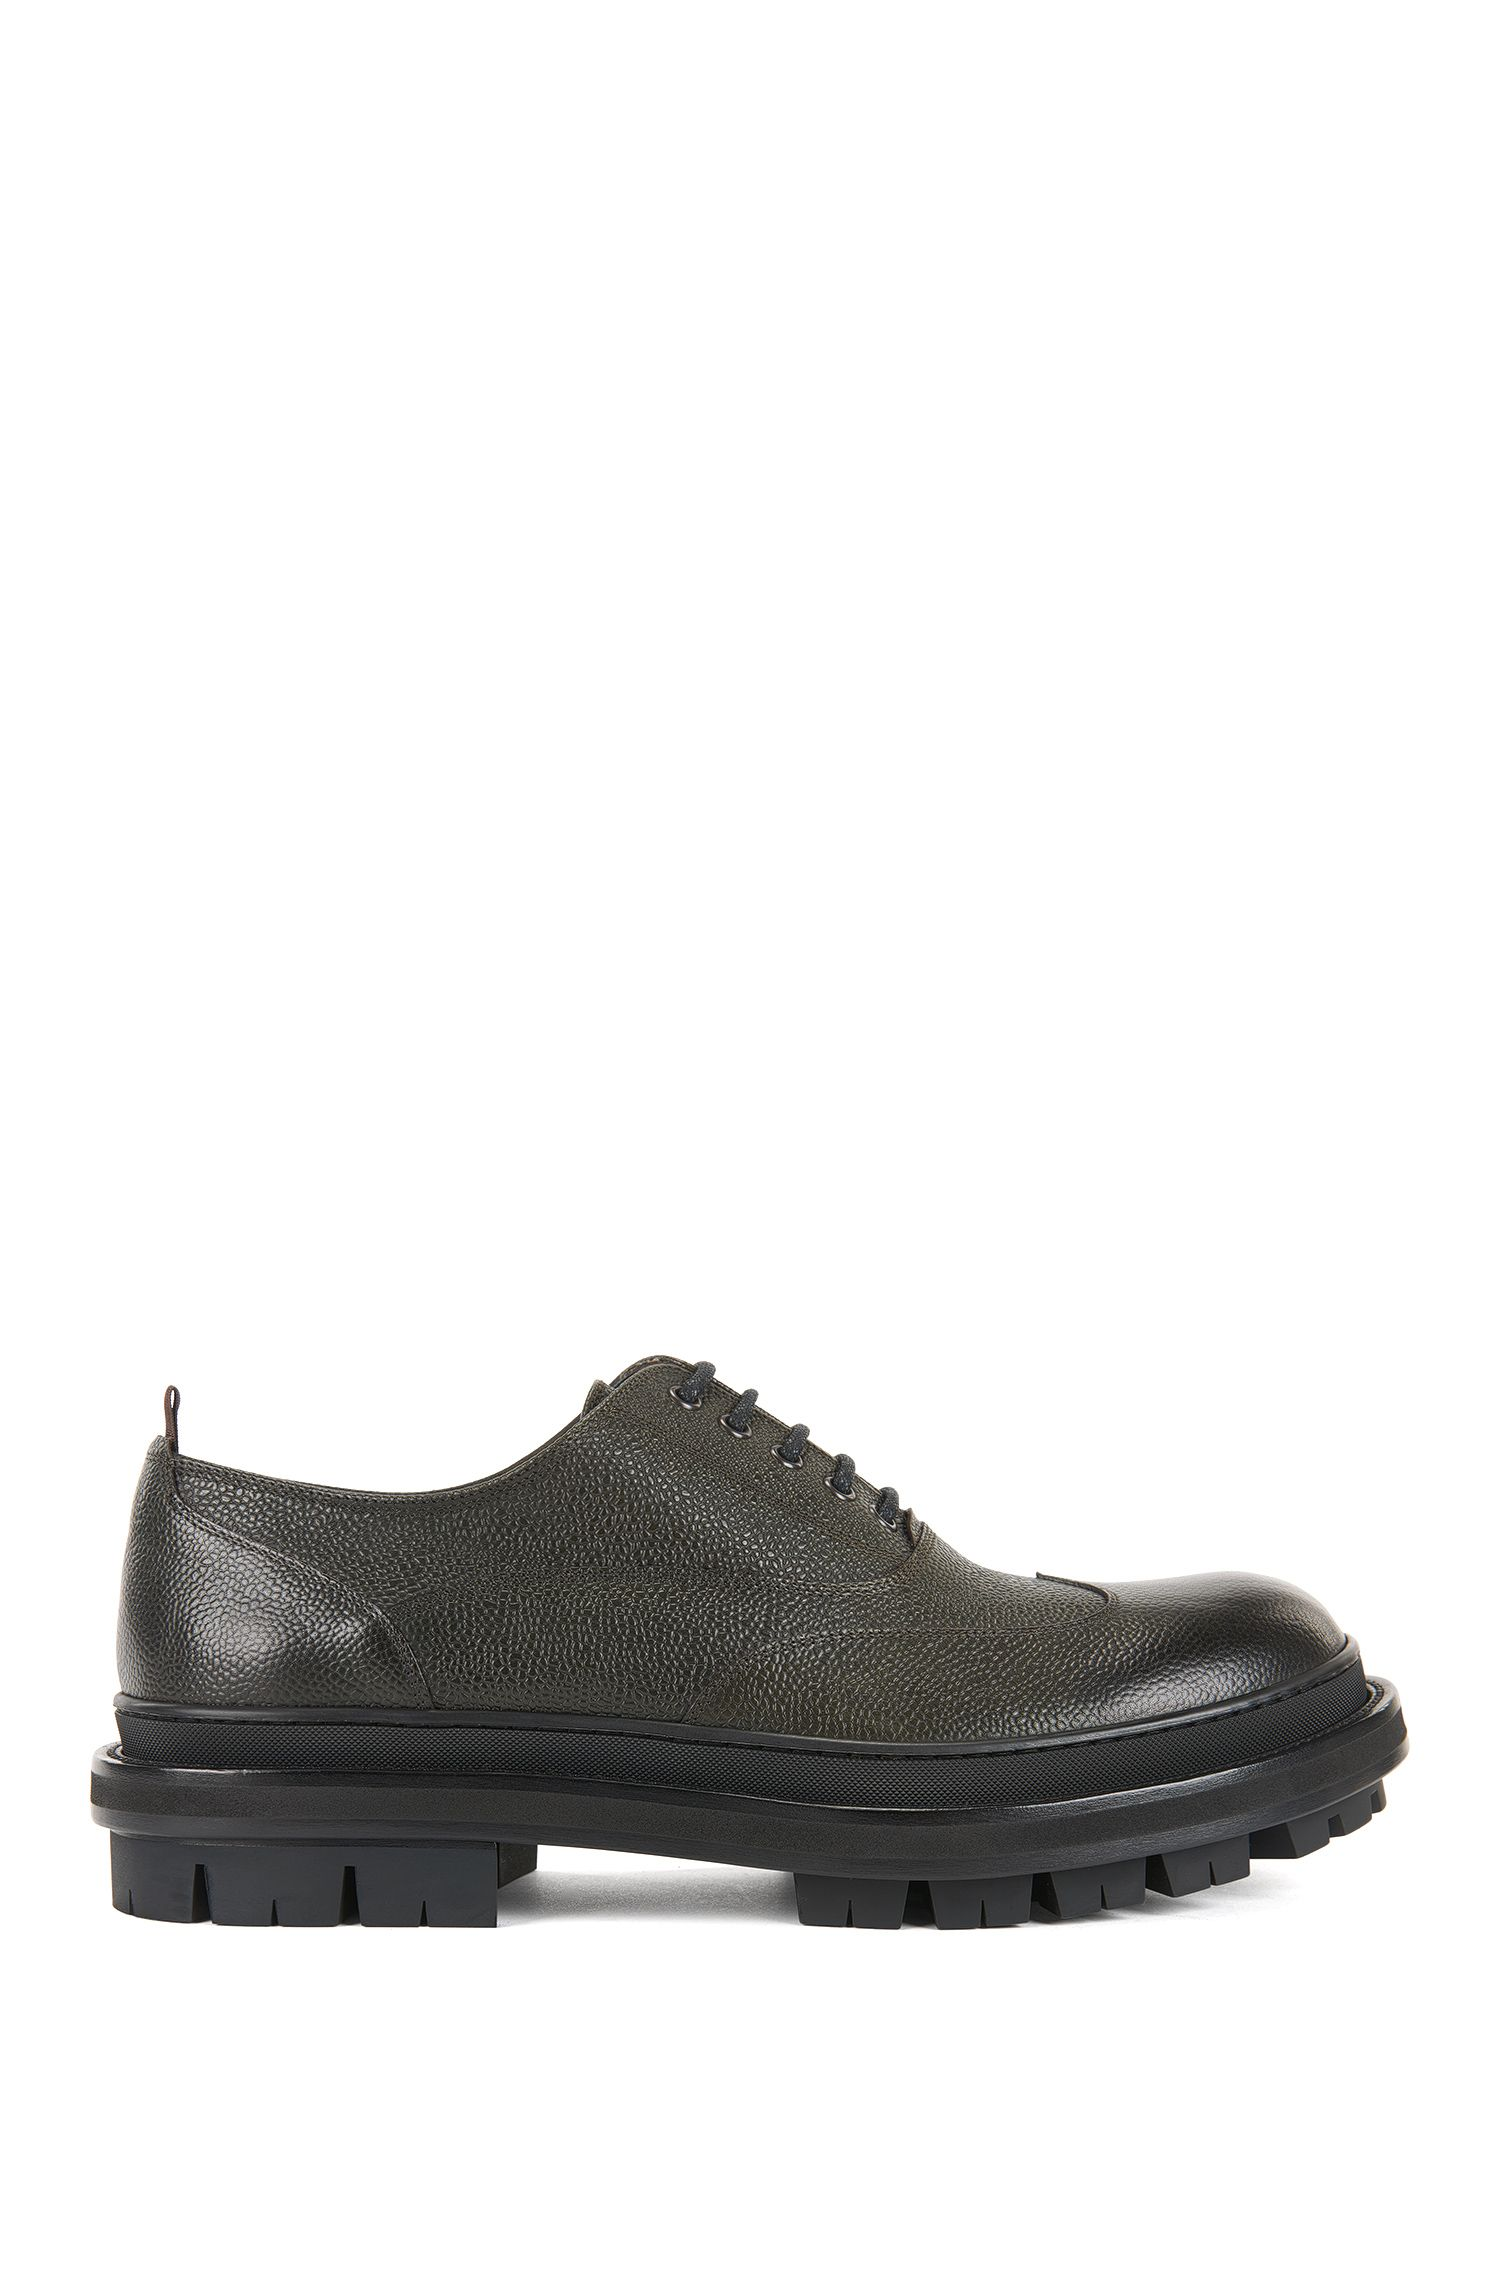 Oxford Shoes in Grained Leather | 'Twist'